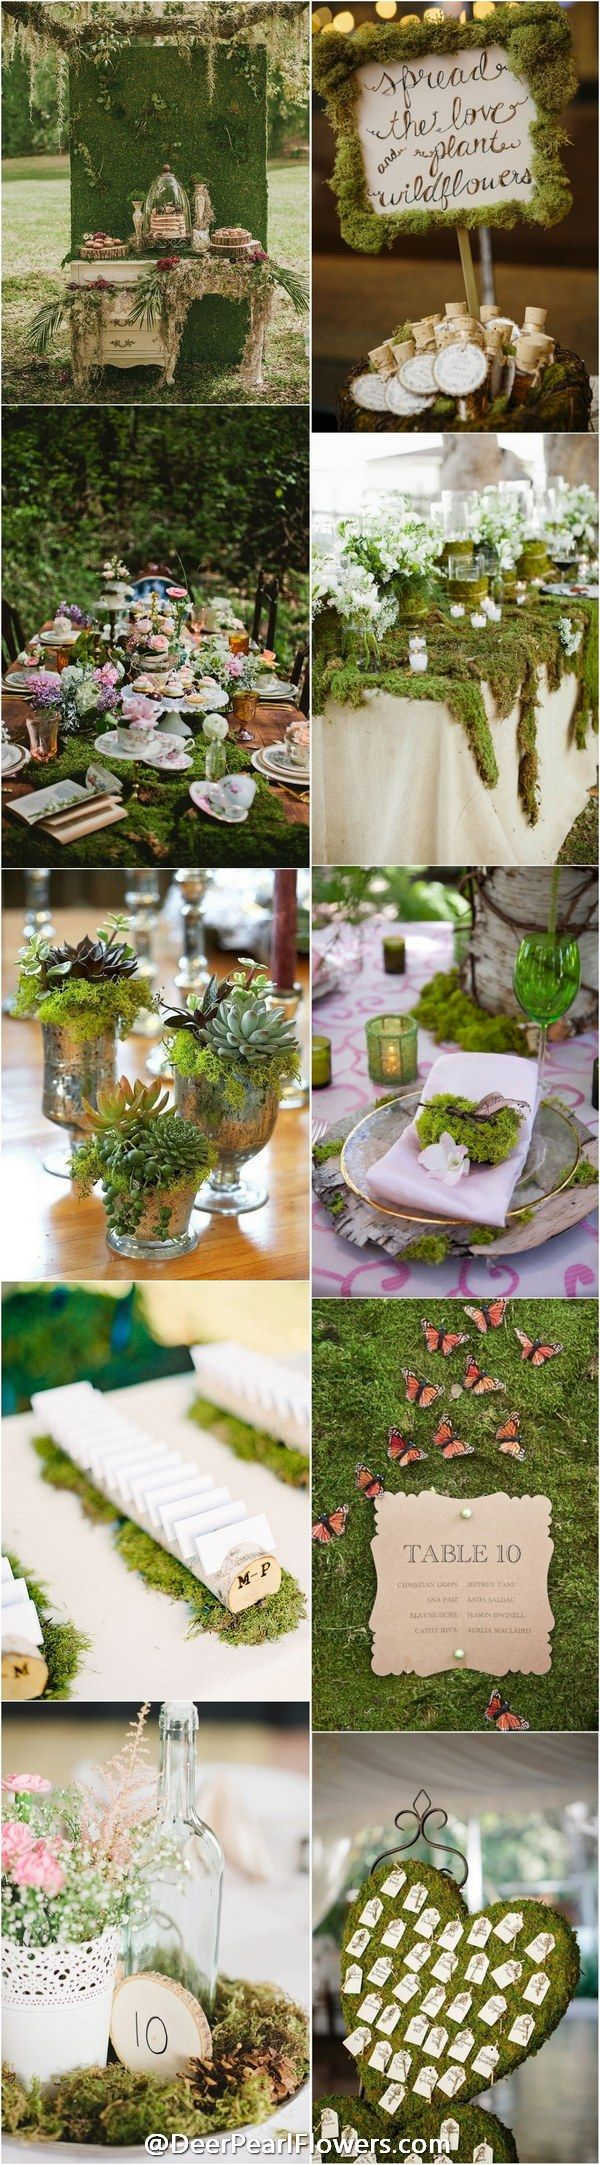 Woodland moss wedding decor ideas / http://www.deerpearlflowers.com/moss-decor-ideas-for-a-nature-wedding/